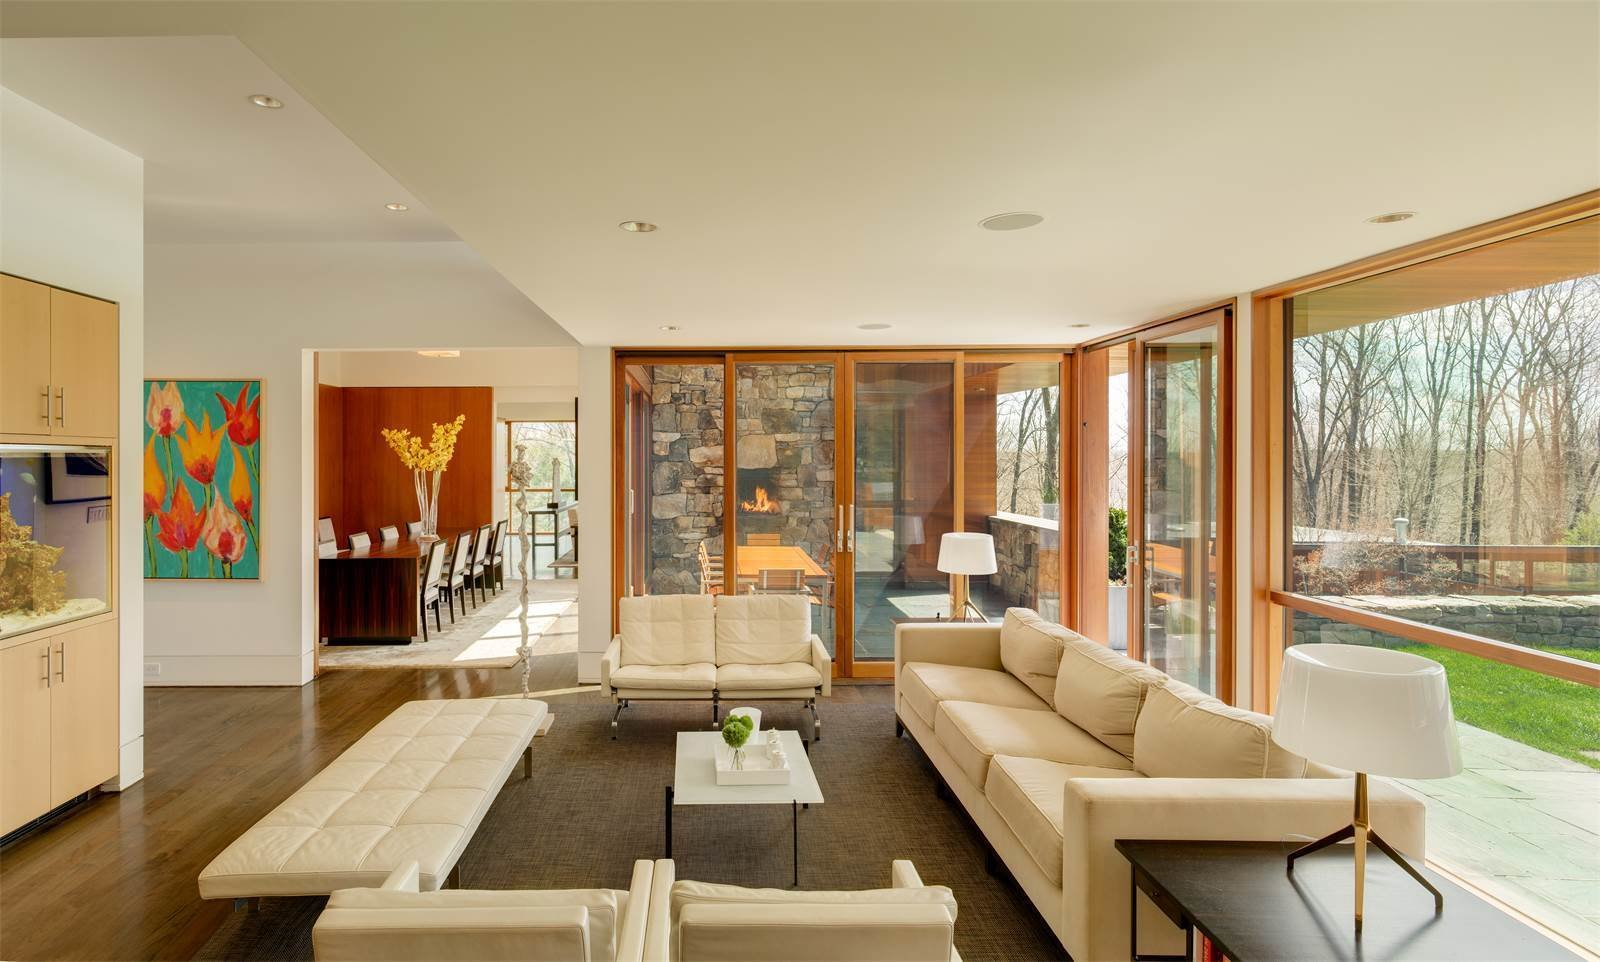 Photo 1 of 9 in Get Smart: Tech-Forward Homes Around the Globe